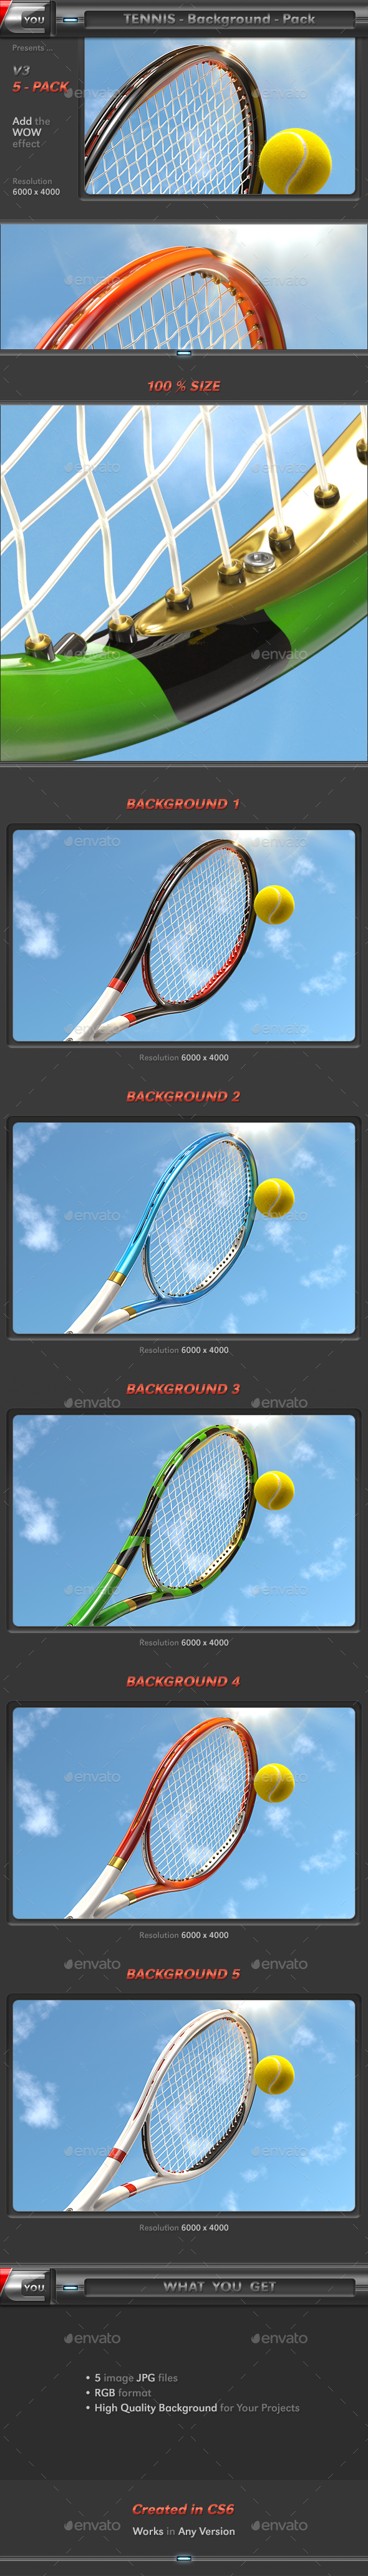 Tennis Background Pack 3 - 3D Backgrounds